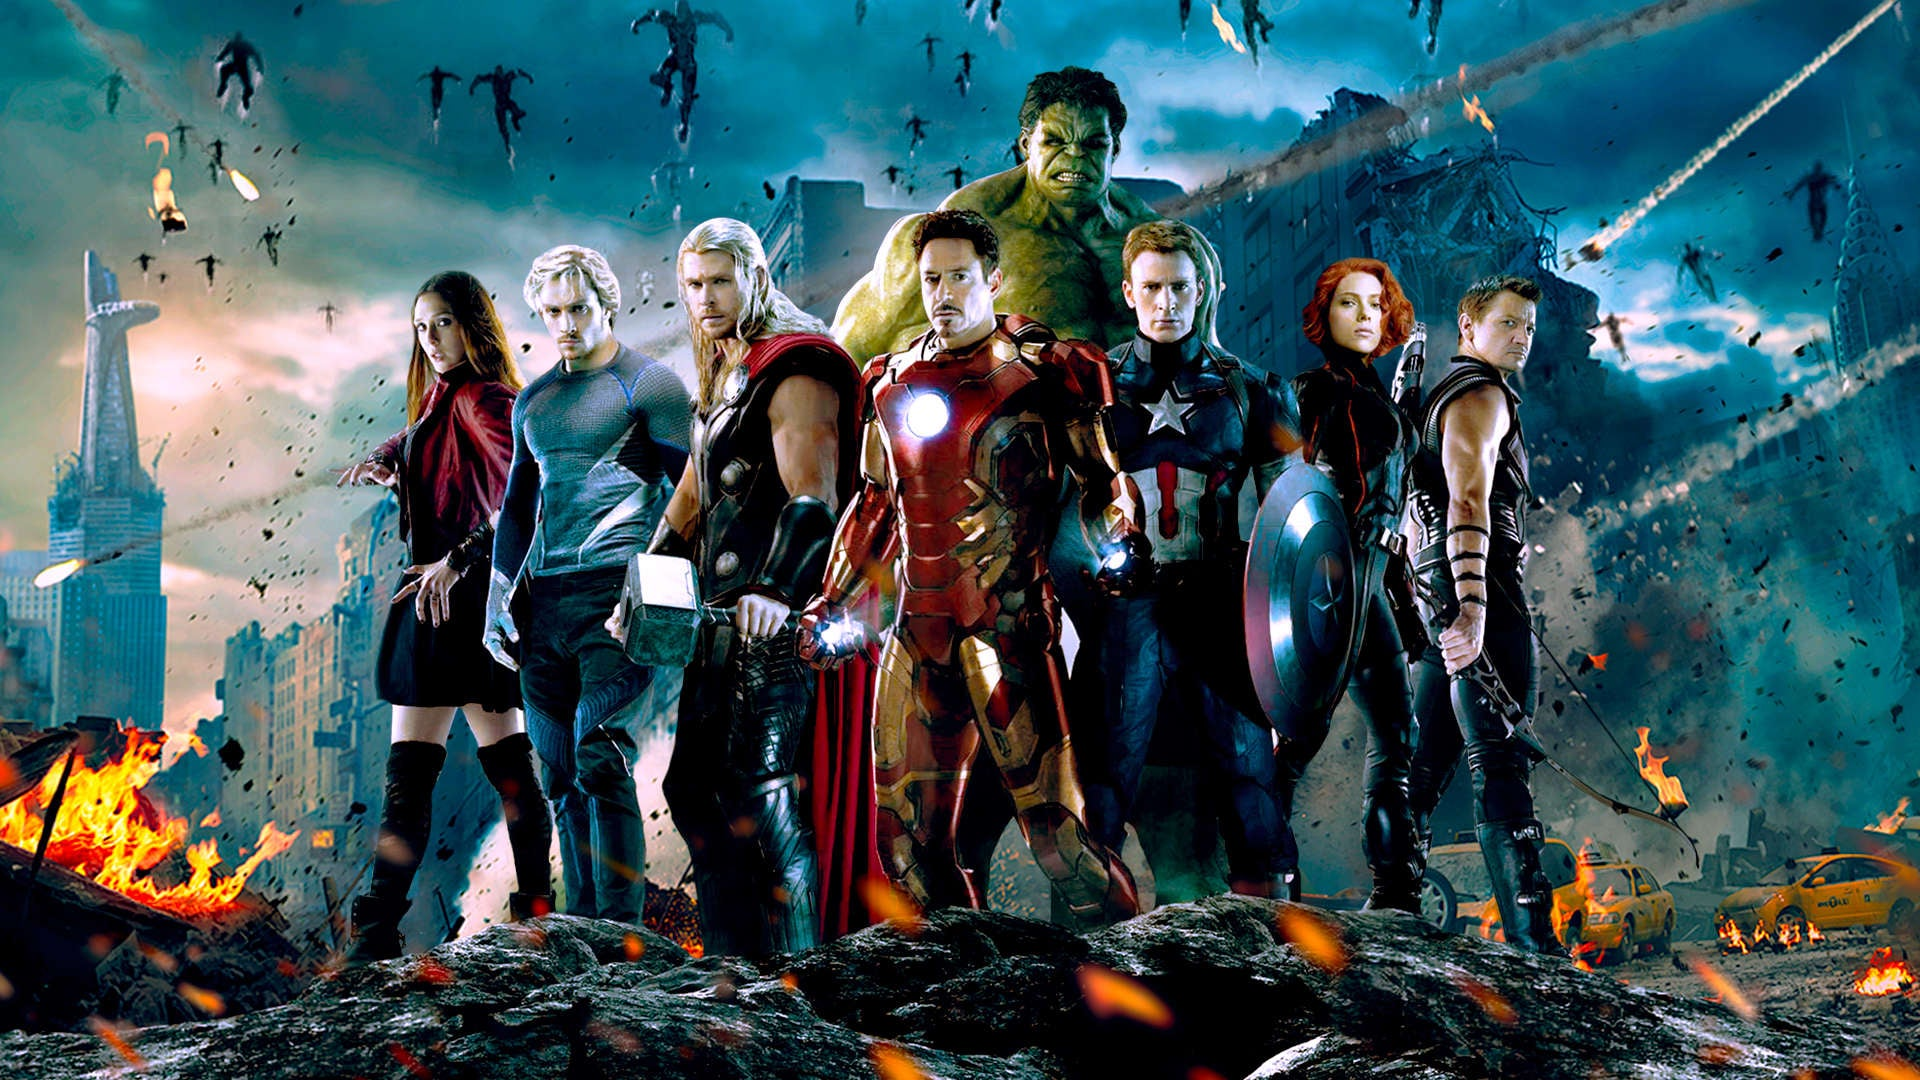 Kevin Feige On Why Marvel's Films Don't Overlap Anymore